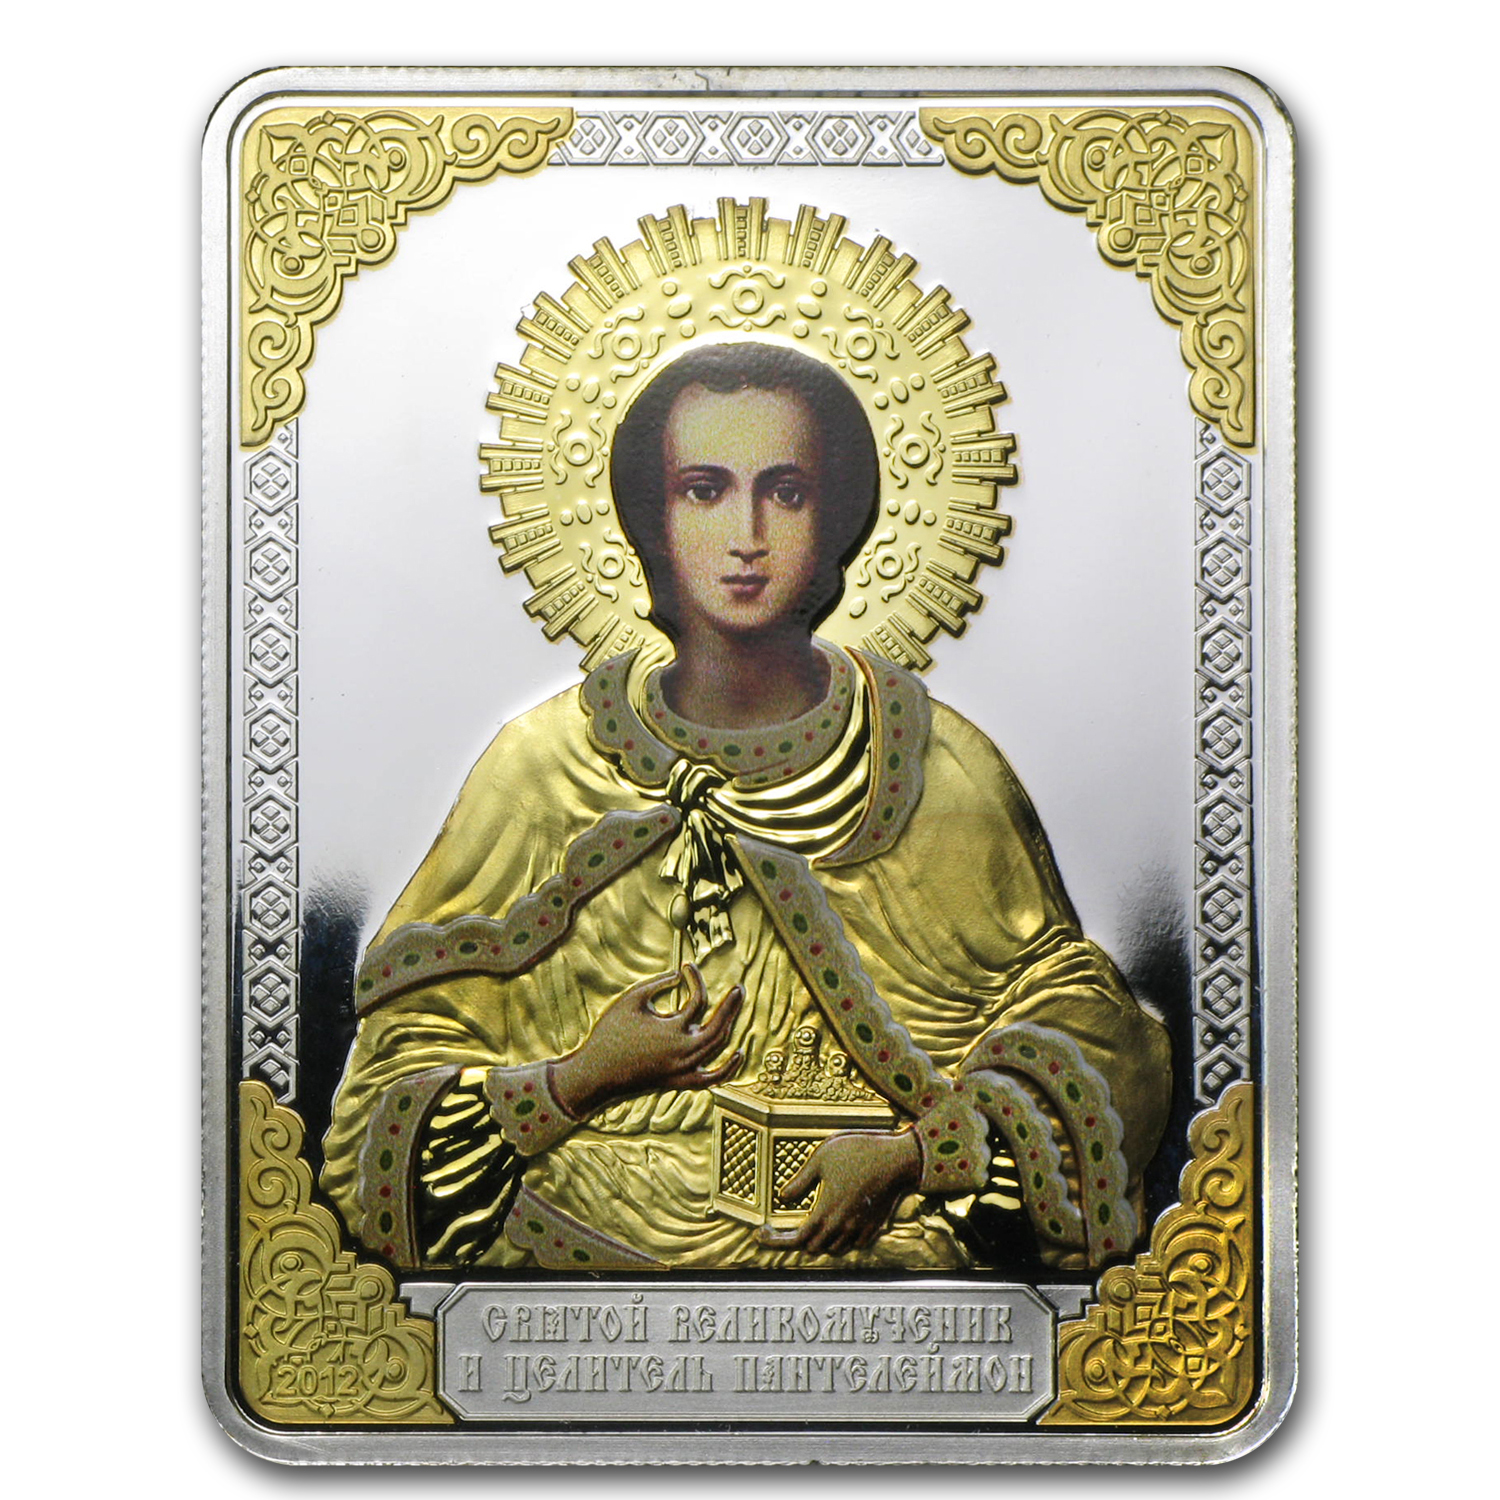 2012 Cook Islands $5 Russian Icon St. Panteleimon